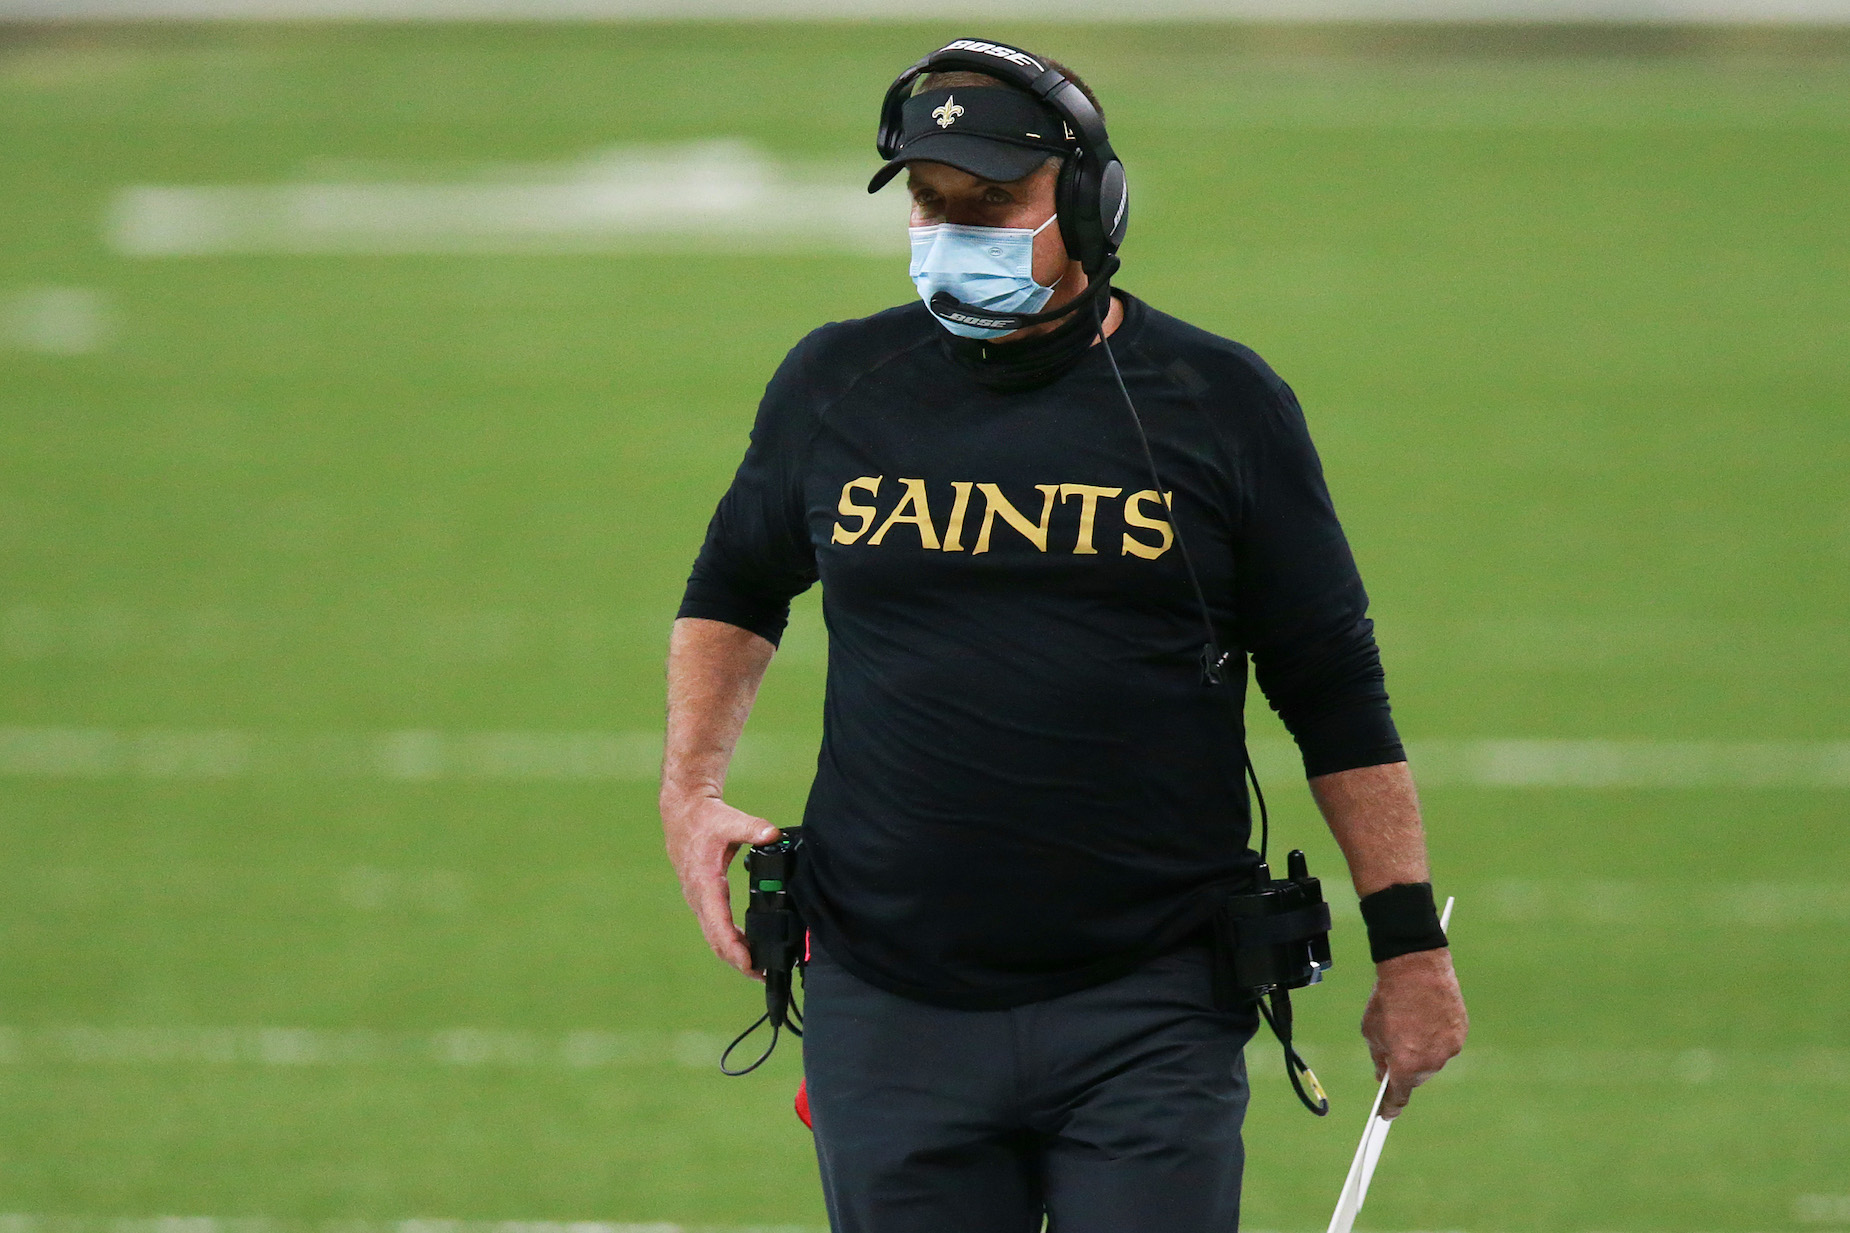 Sean Payton is using a $2 face mask to avoid future fines from Roger Goodell.